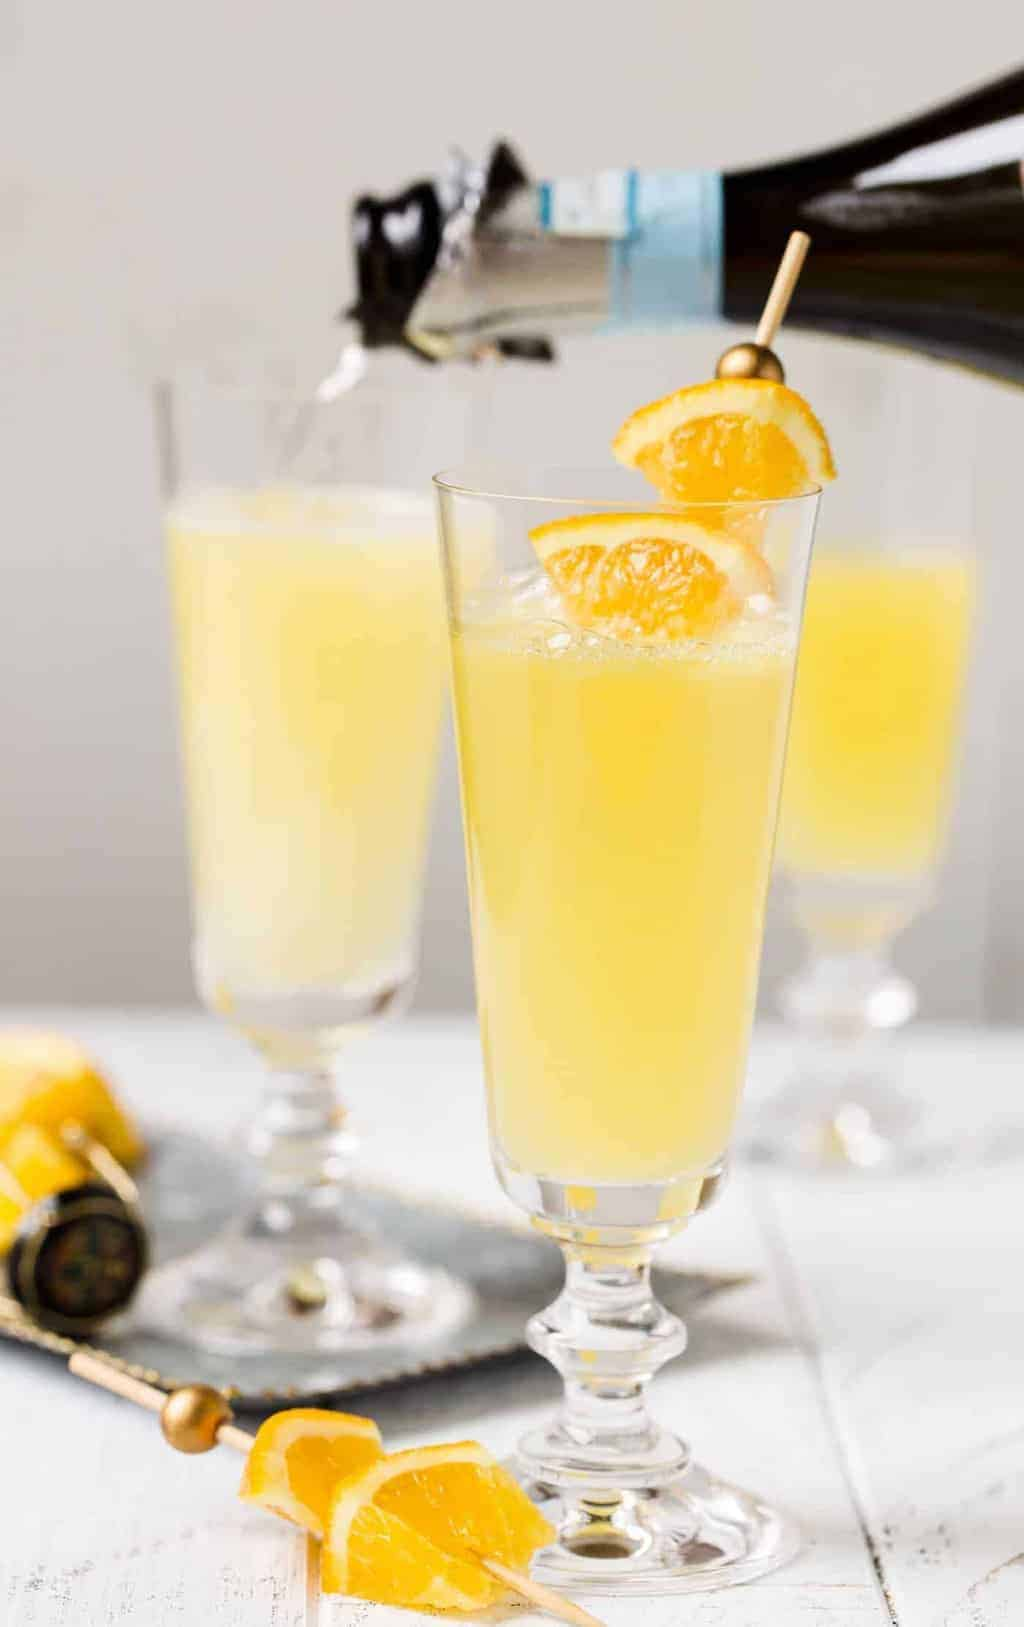 Trio of Mimosas in champagne flutes on white background with a silver tray. Garnished with fresh orange wedges.